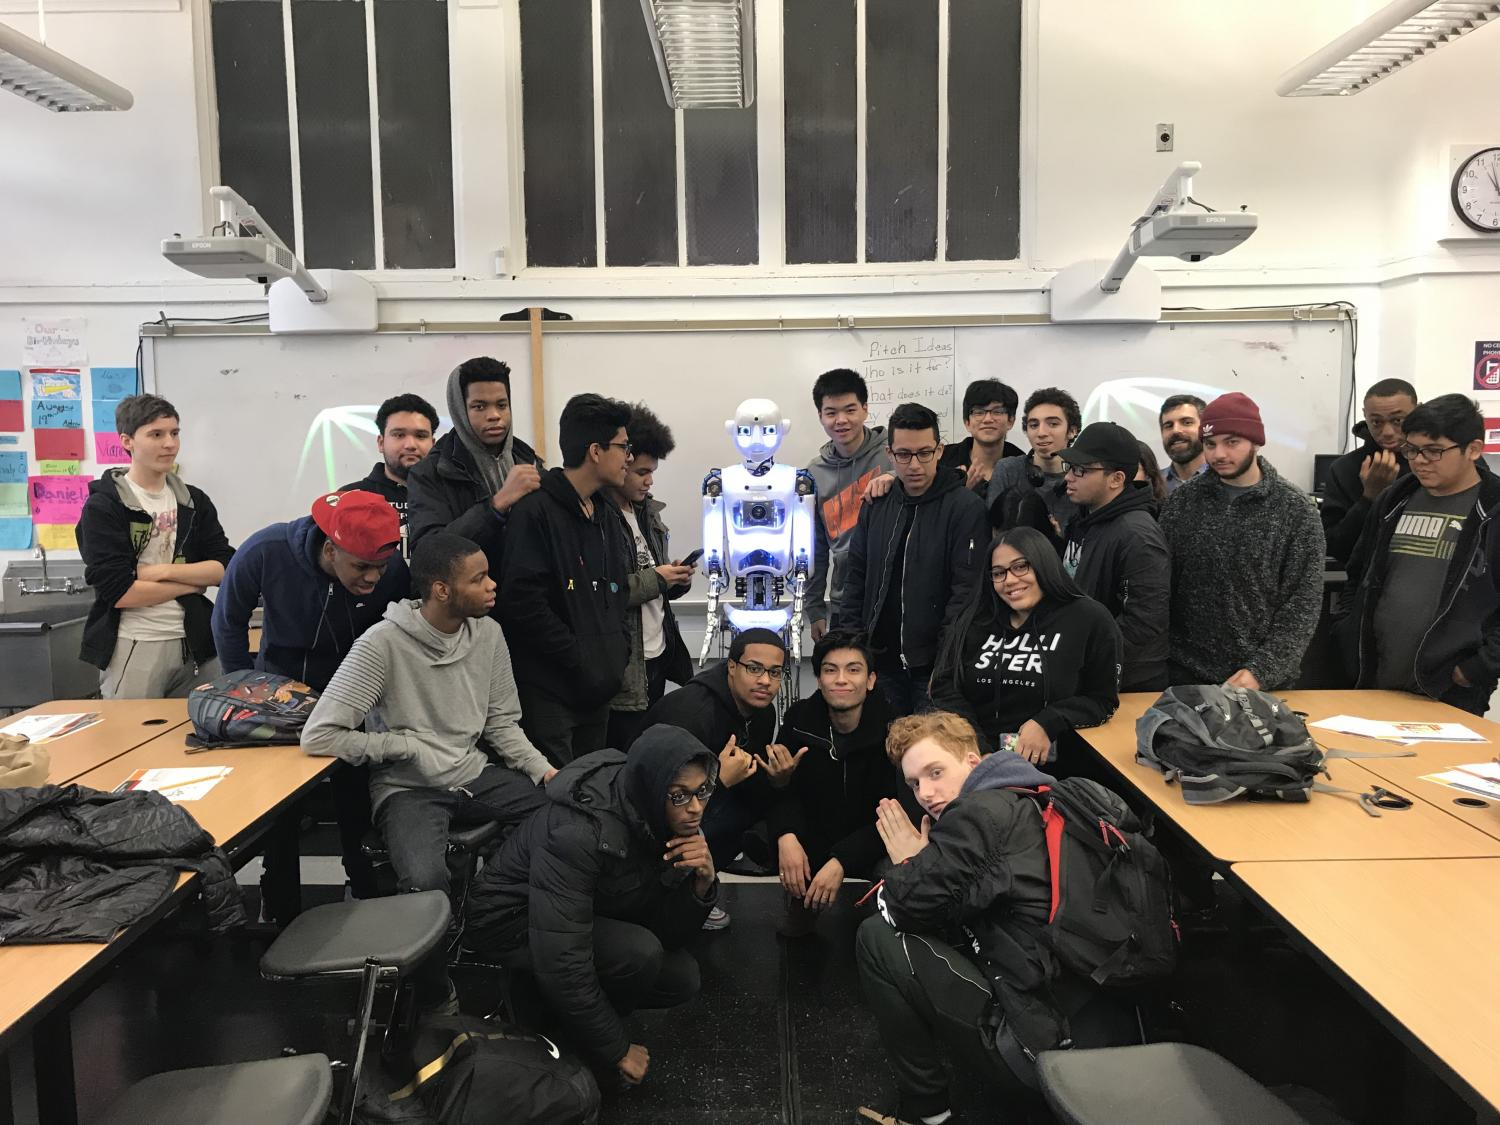 In NYC, PwC Rolls Out Robots to Help Students Learn Tech